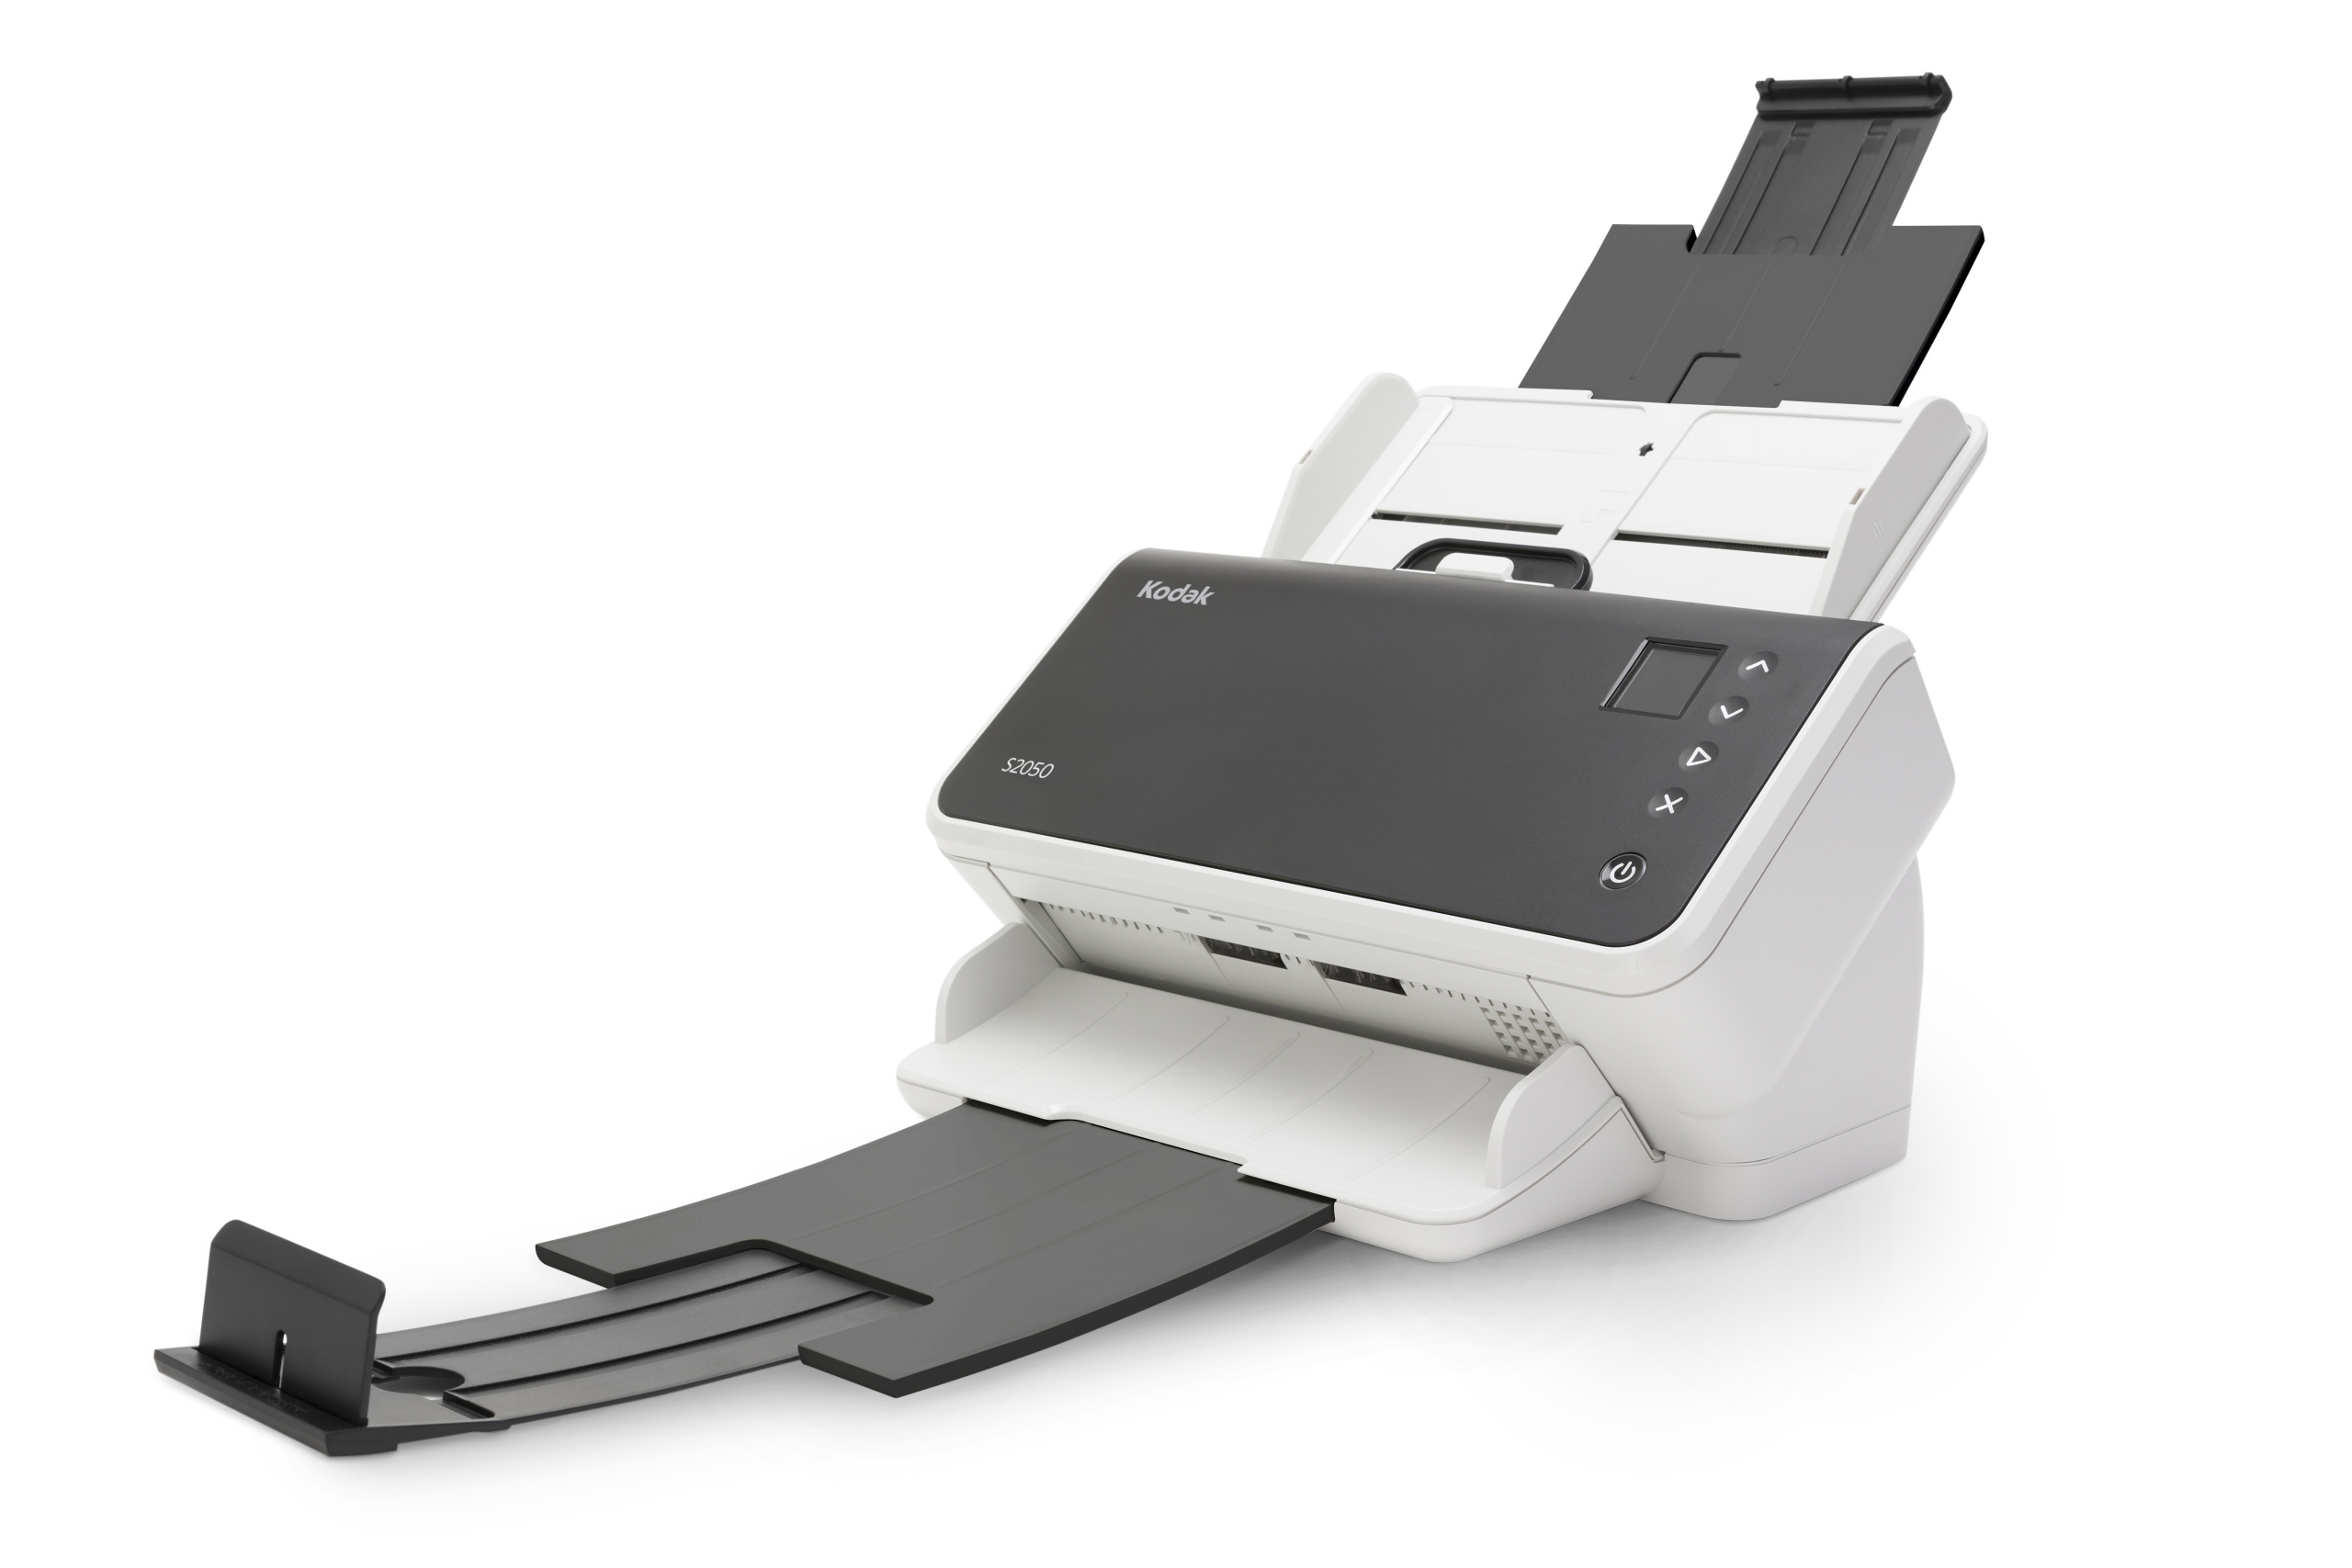 S2070 Scanner with tray